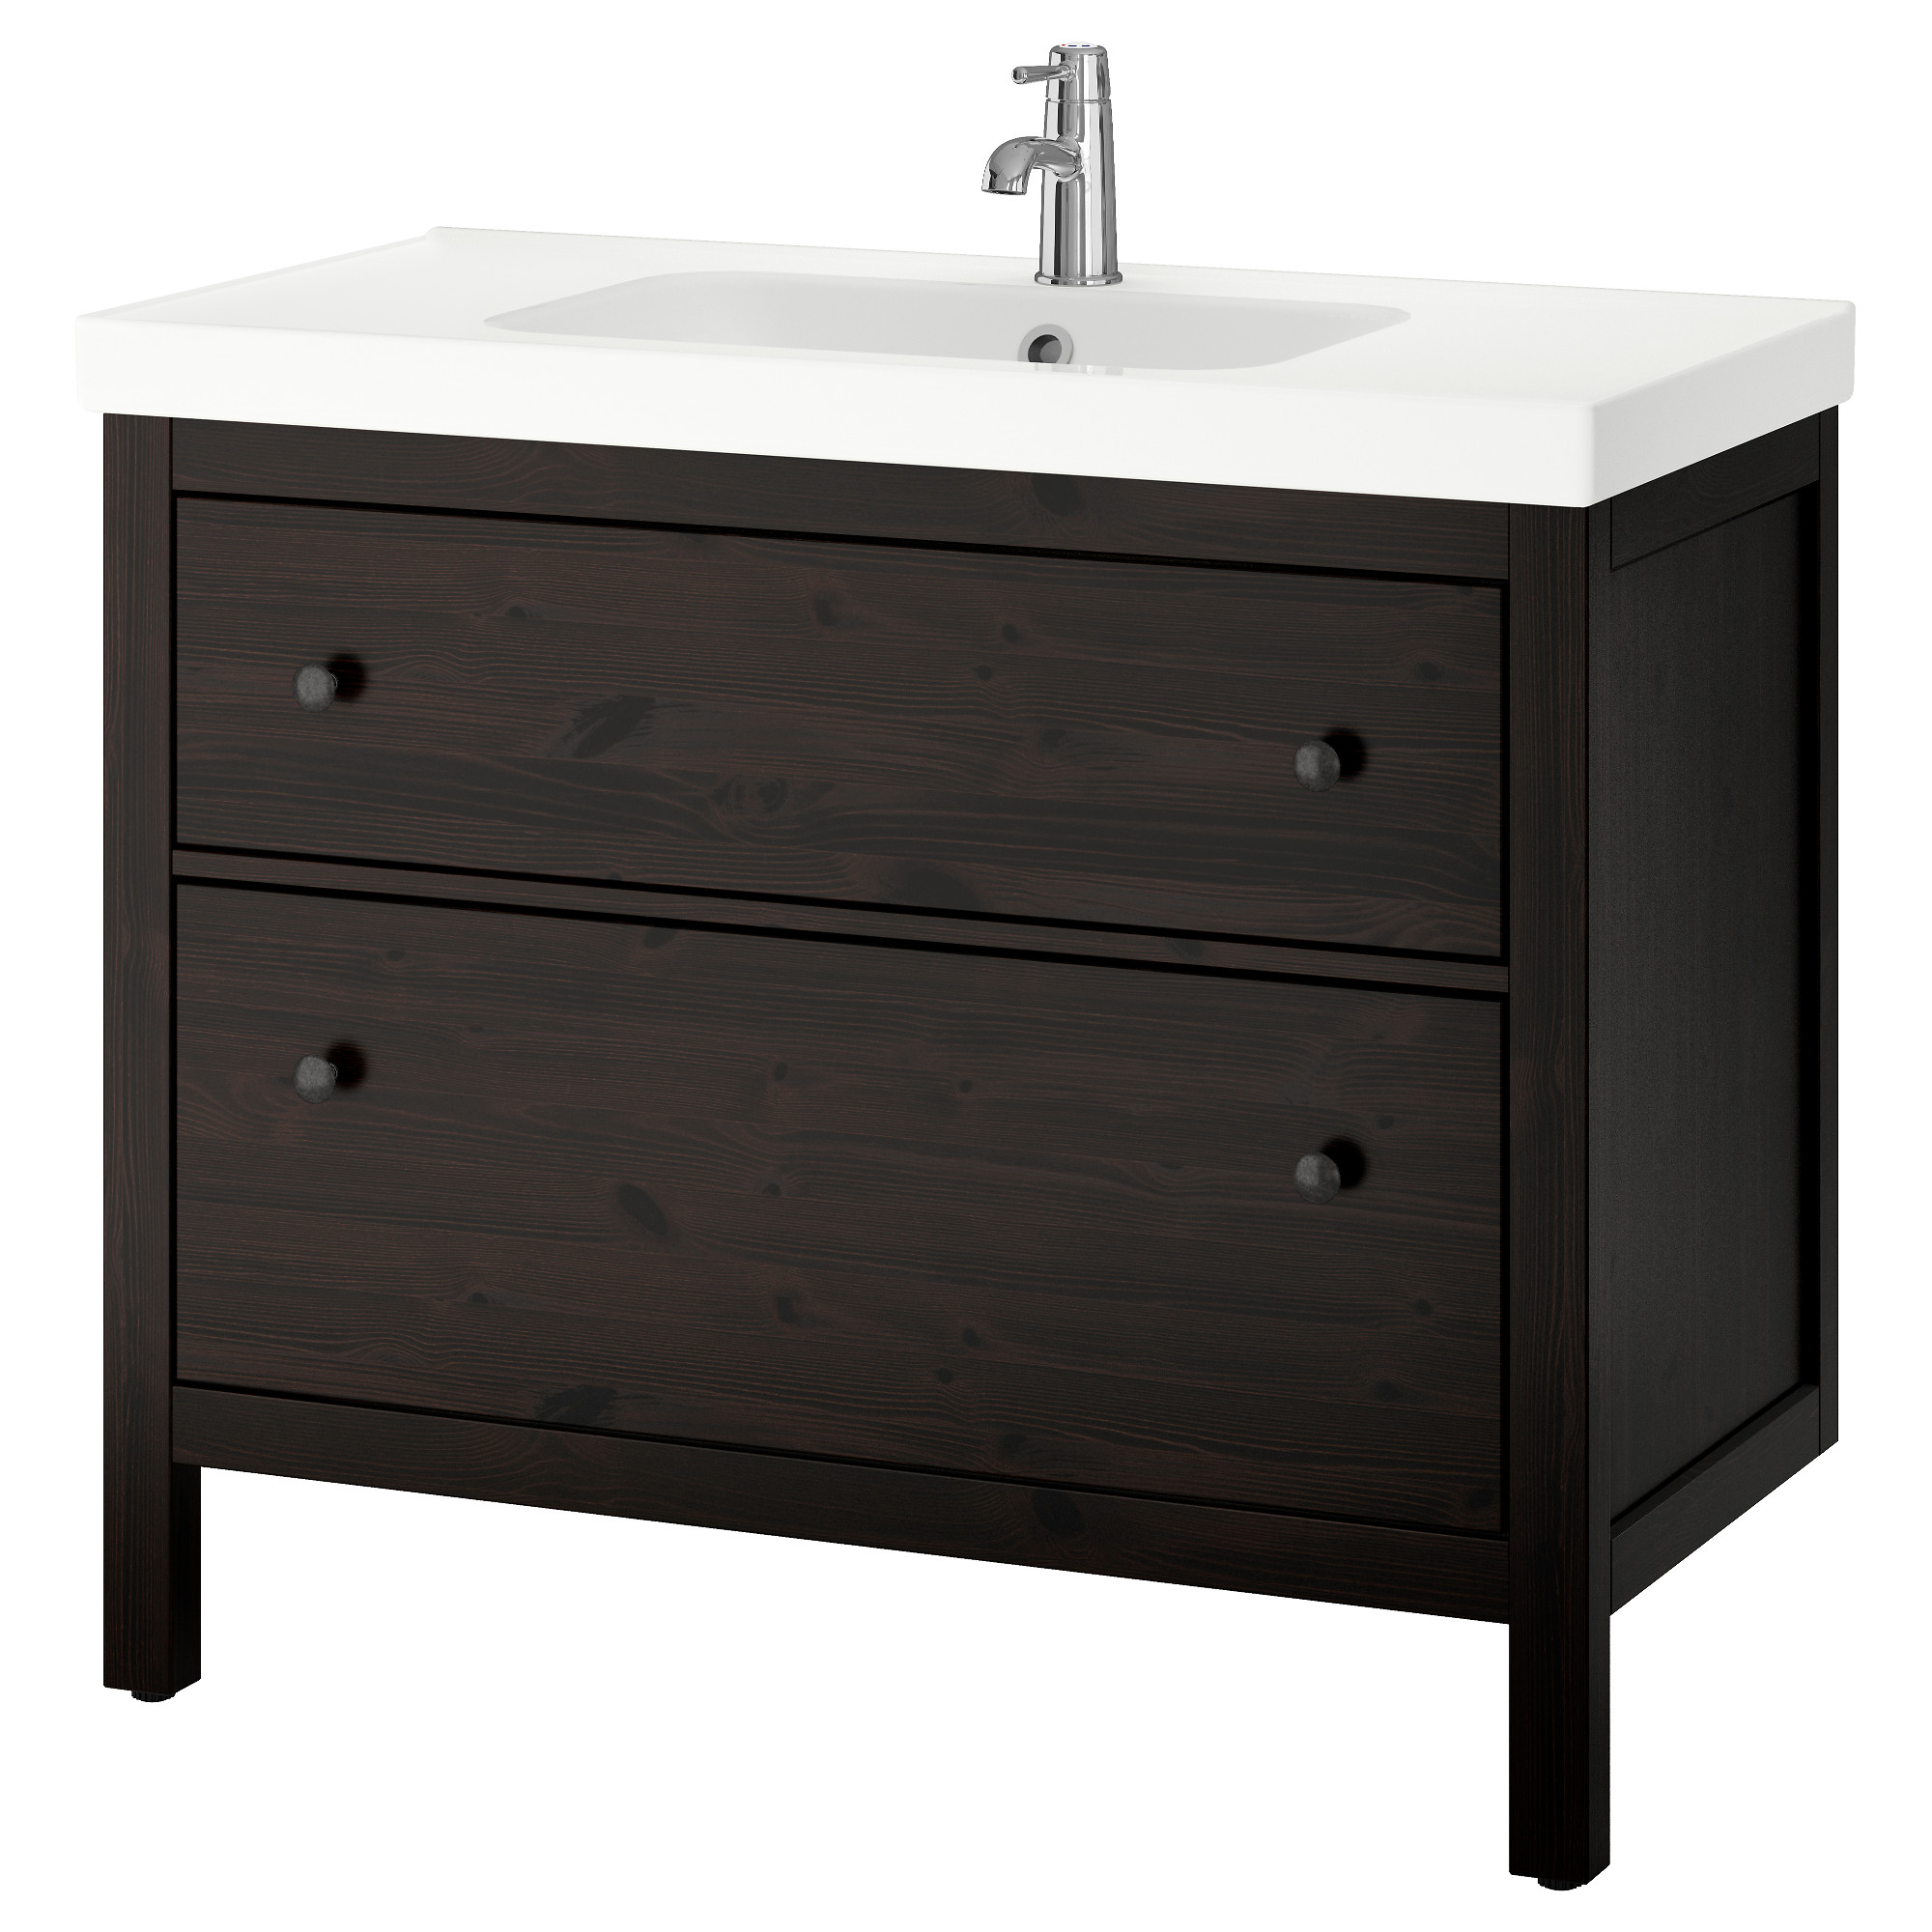 Hemnes Odensvik Sink Cabinet With 2 Drawers Black Brown Stain Width 40